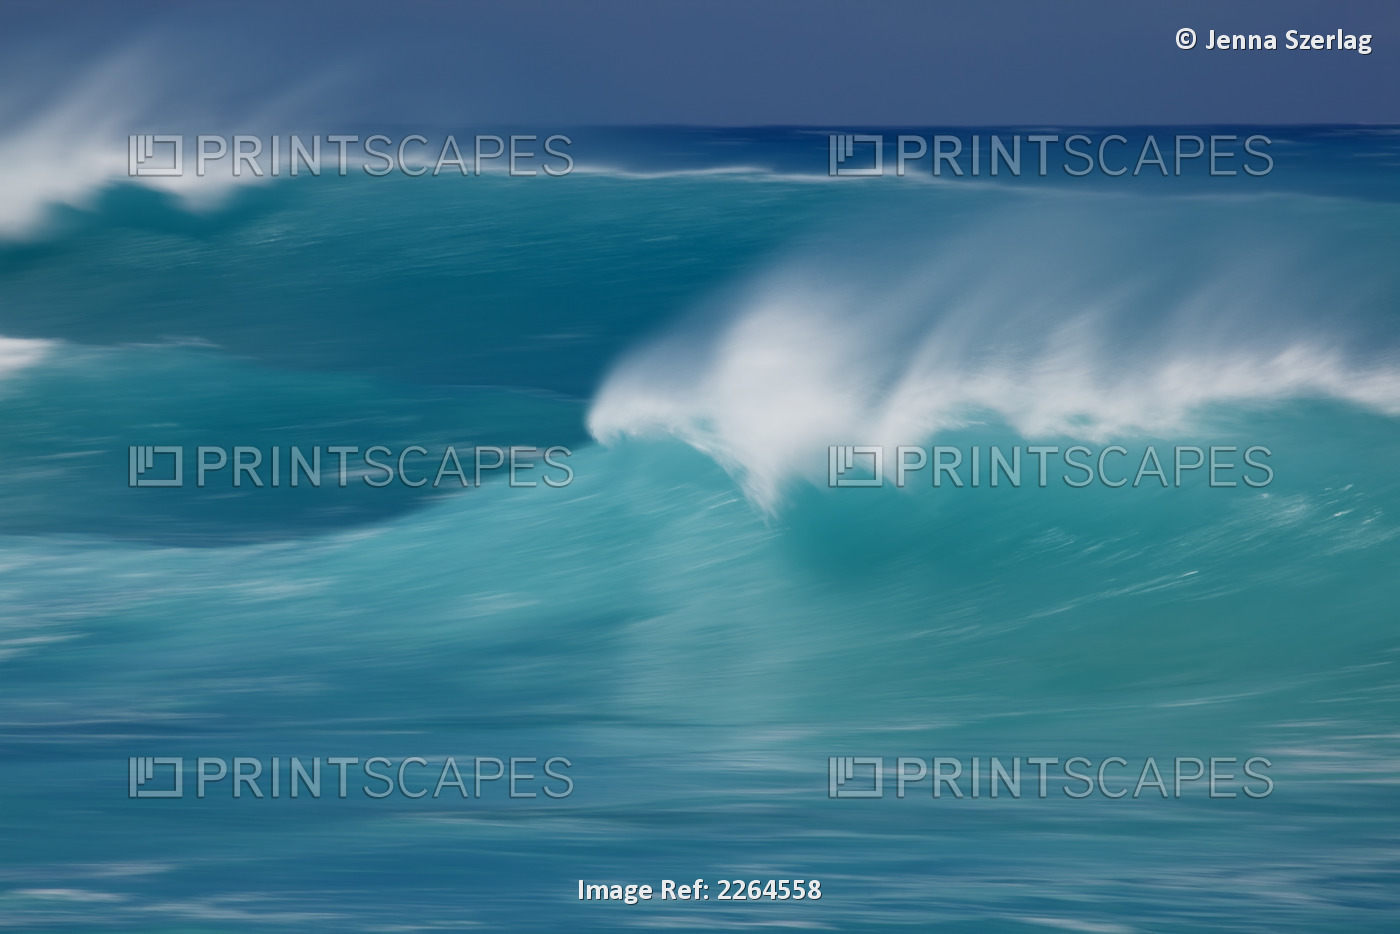 Hawaii, Maui, A Blurred Image Of A Soft Wave Breaking.